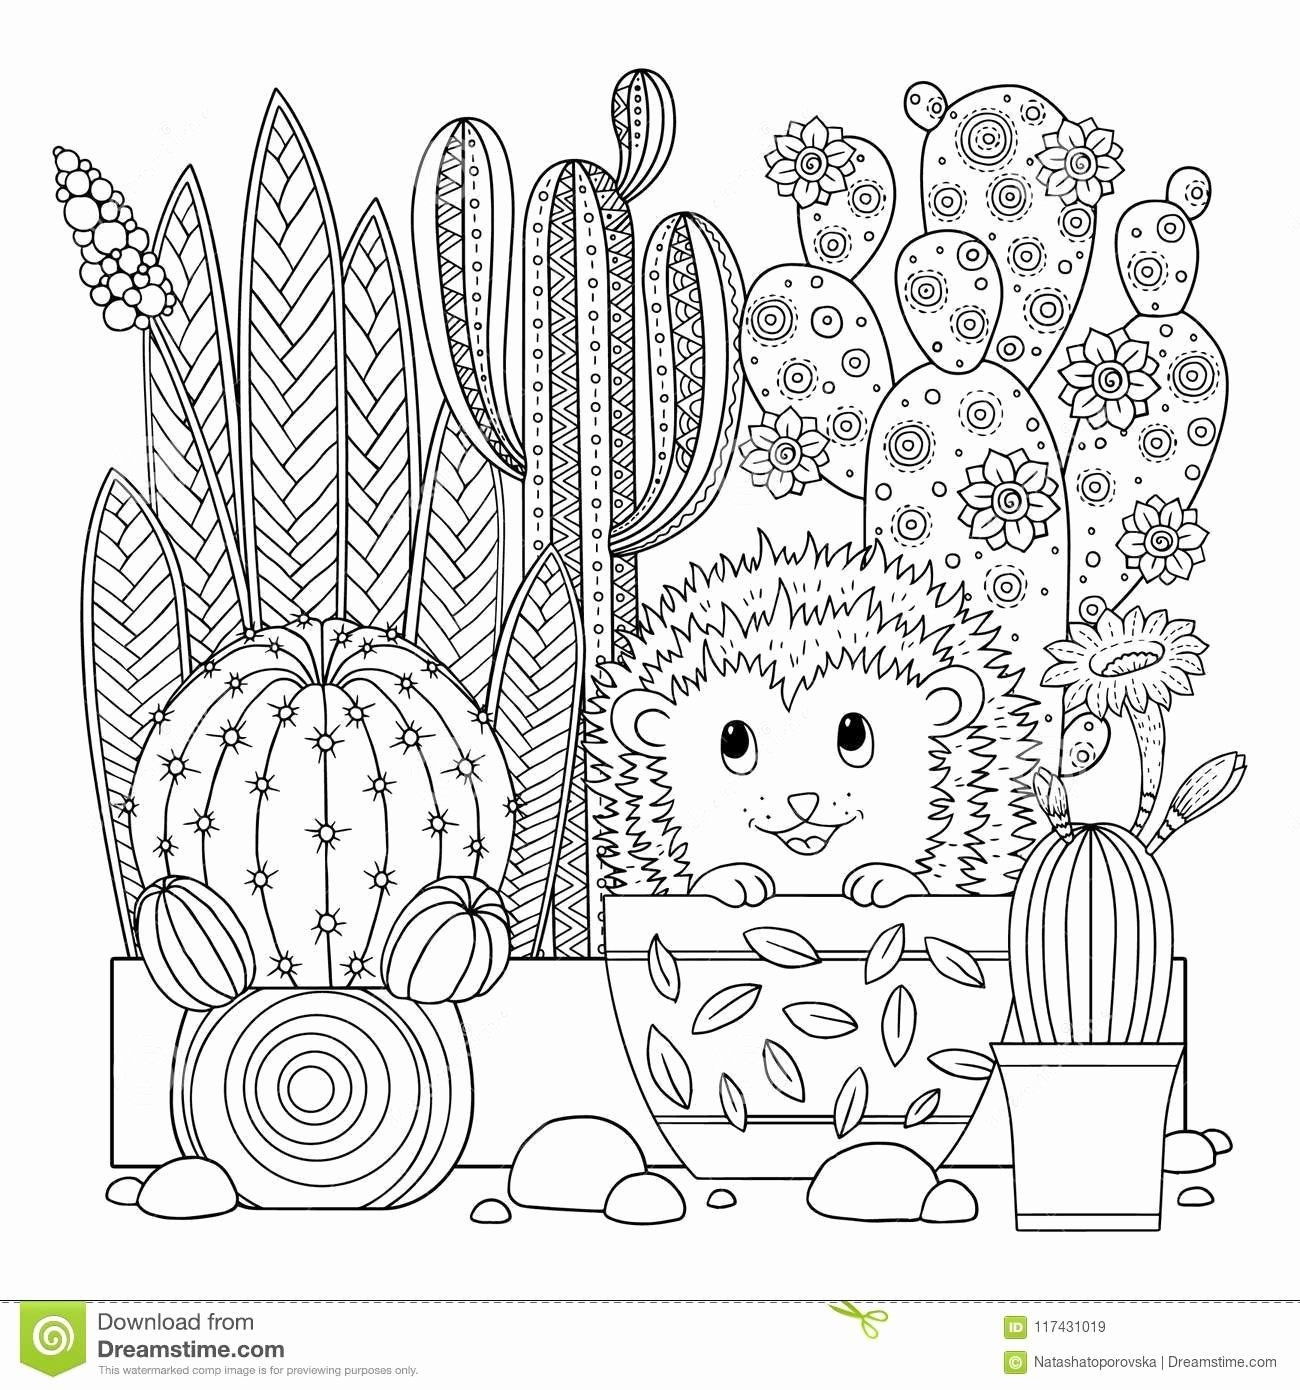 Pin On Cactus Coloring Page